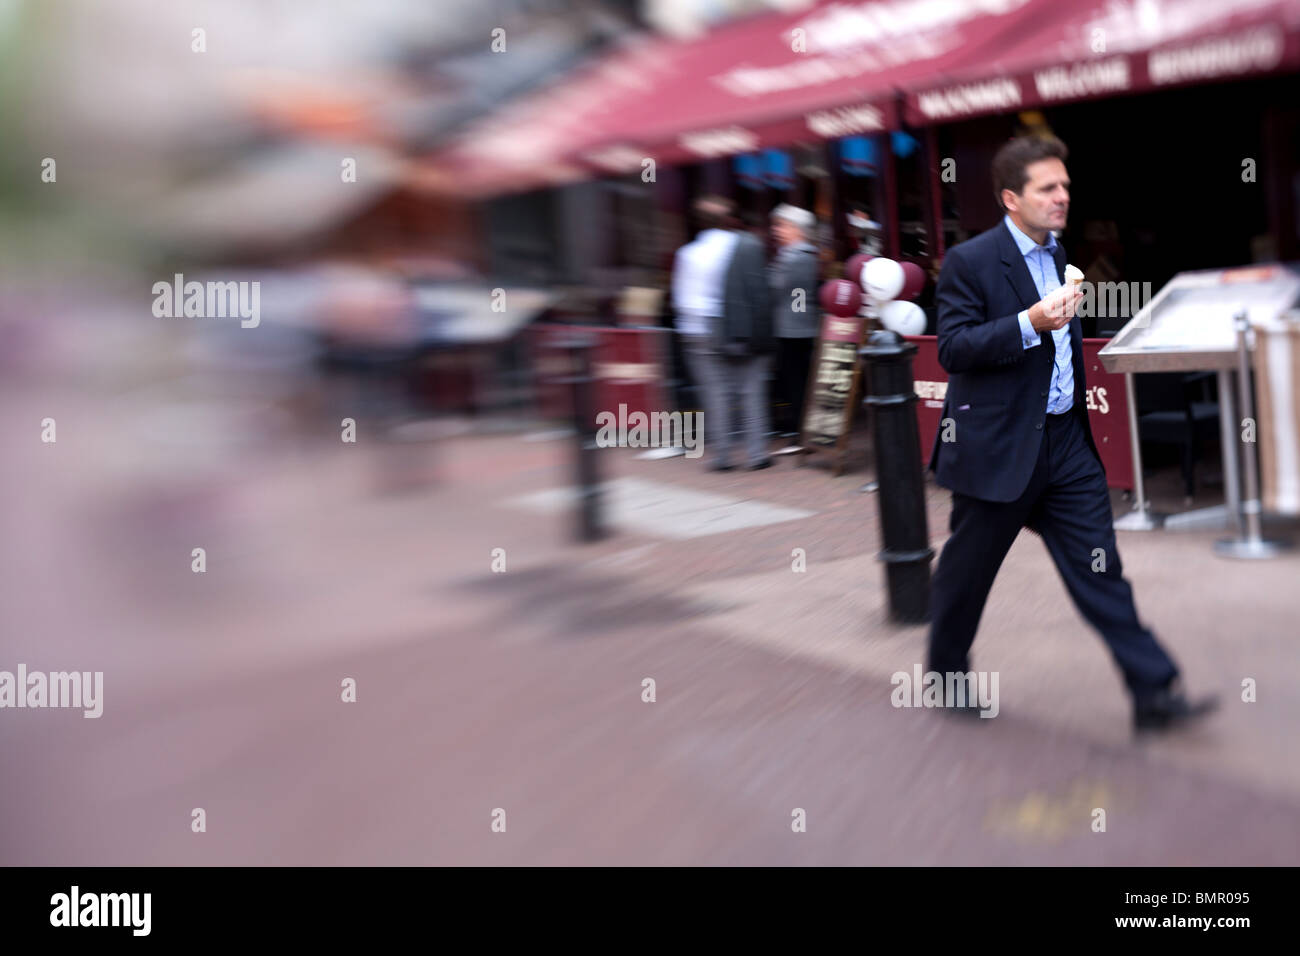 A business man walking with an ice cream in Leicester Square, London, England. - Stock Image